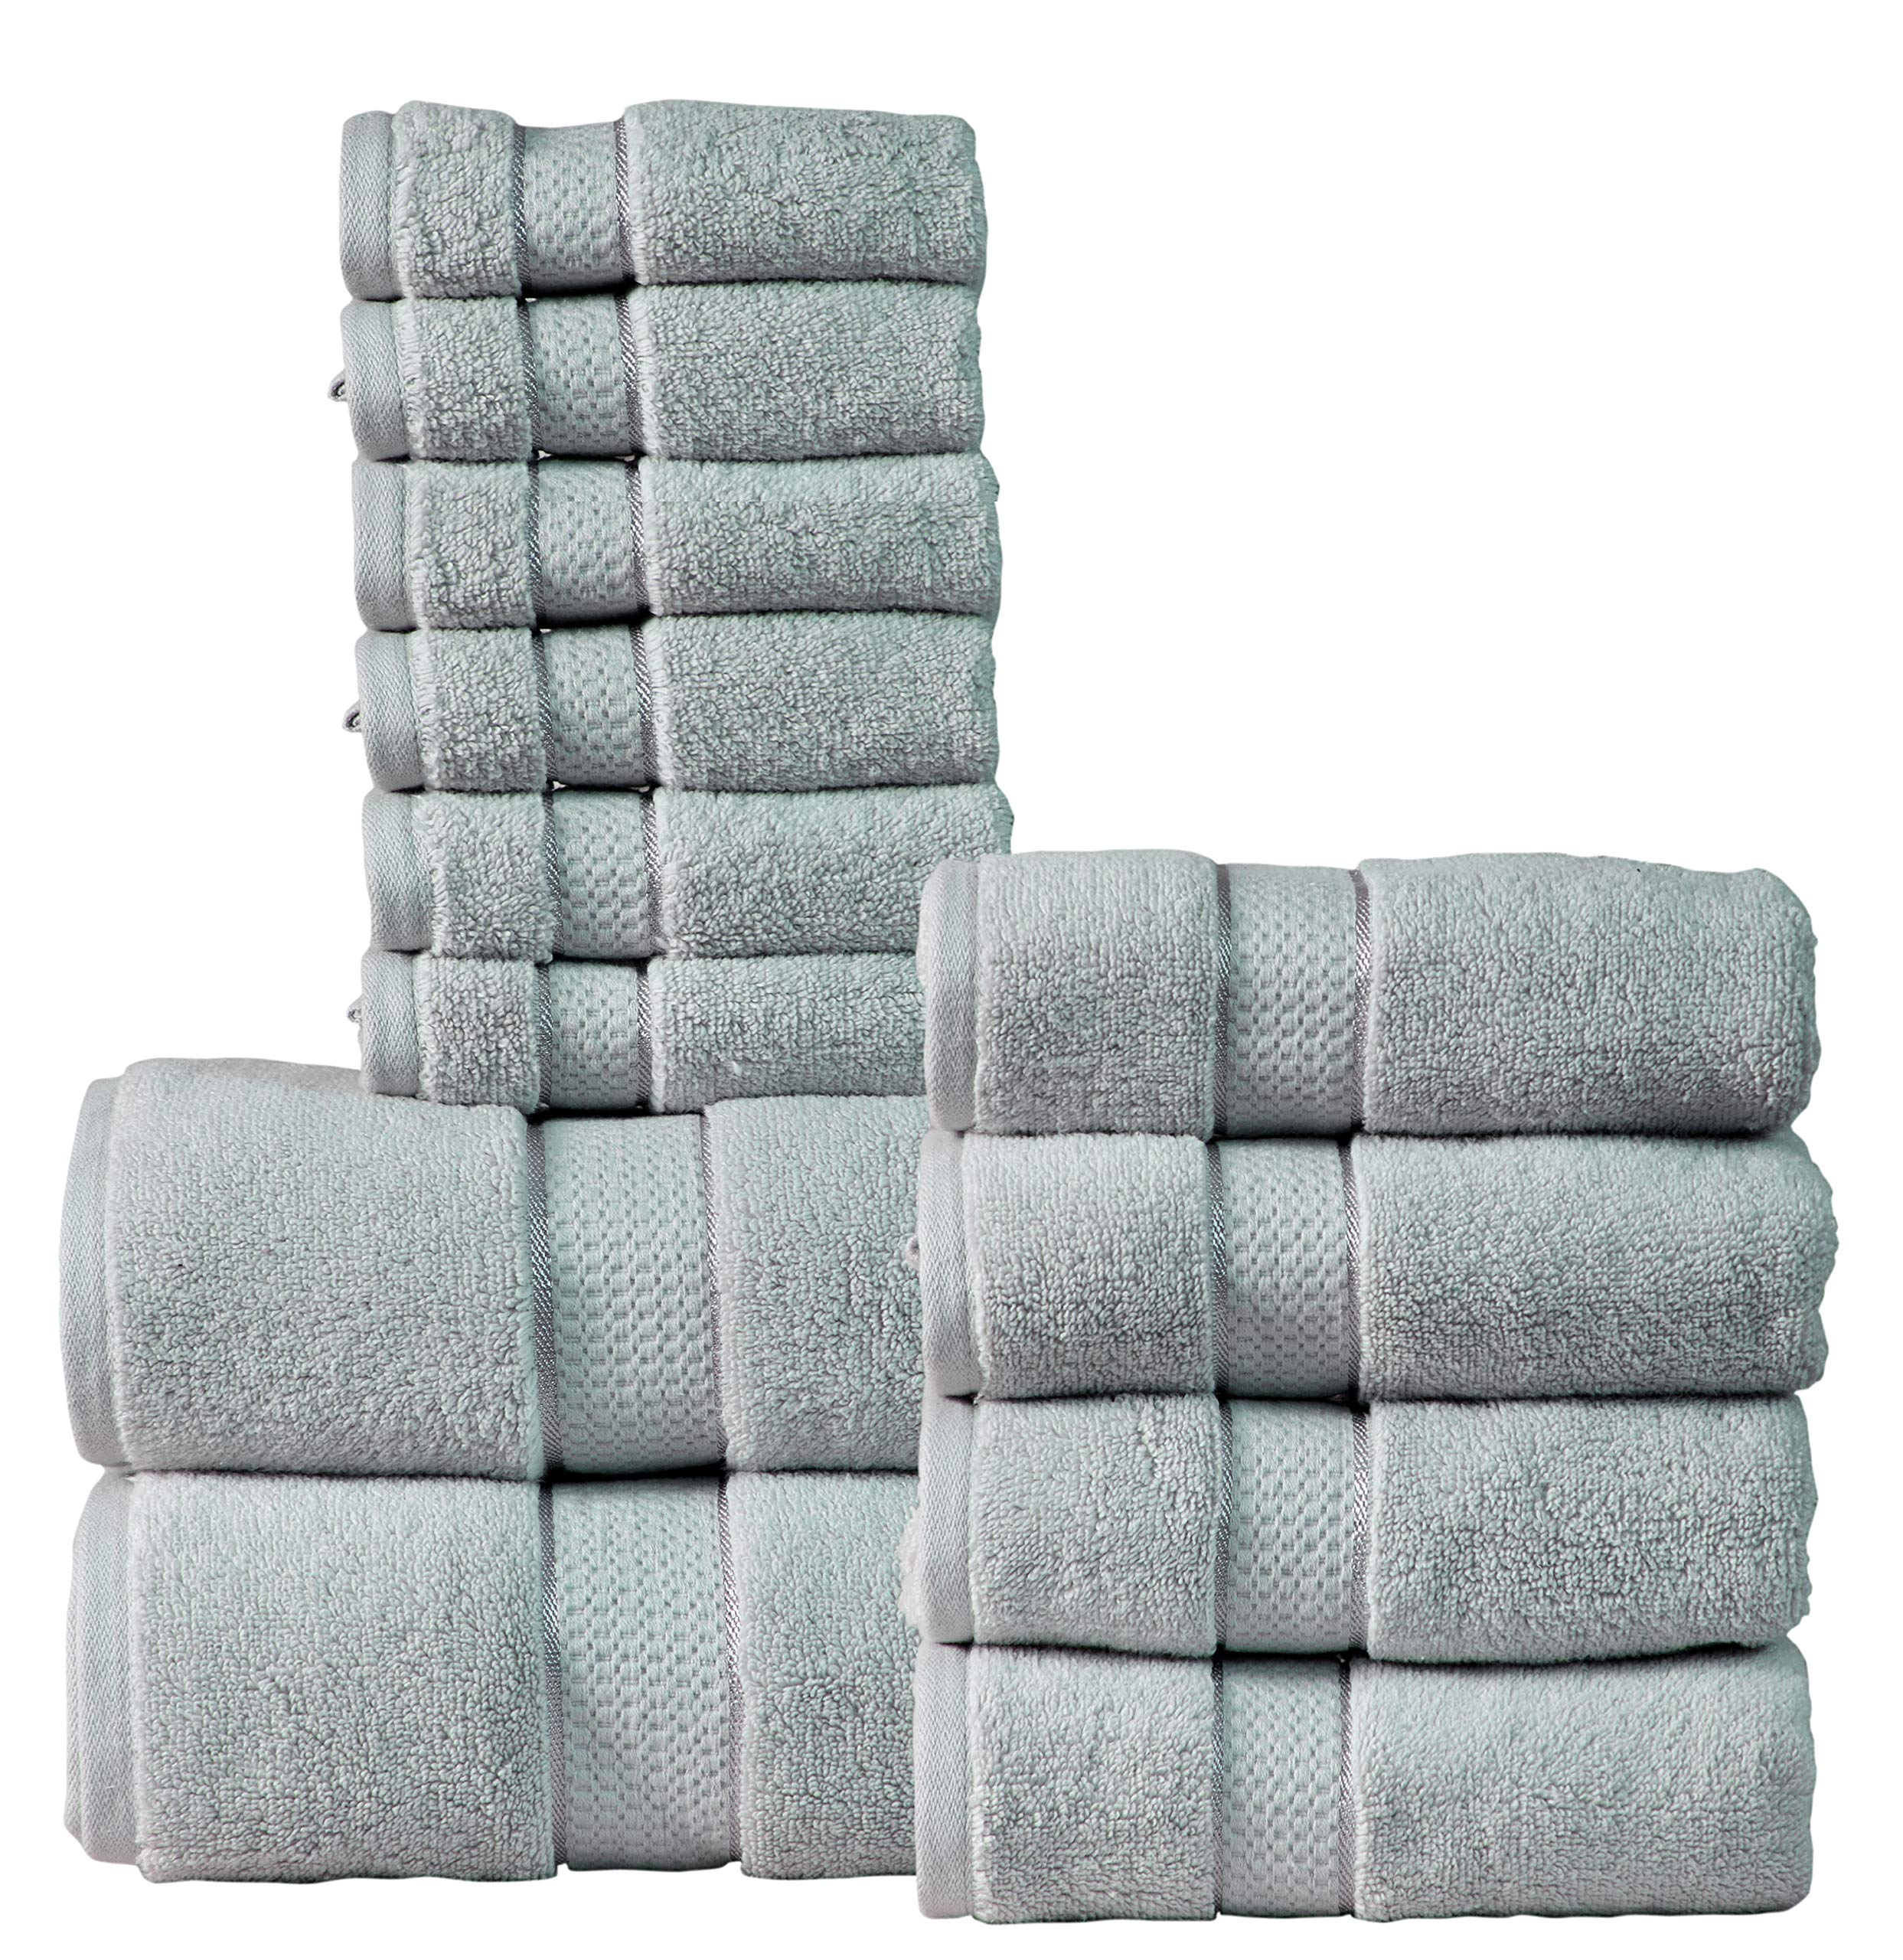 Wicker Park 550 GSM Combed Zero Twist Cotton 12-Piece Towel Set (Platinum Grey): 2 Bath Towels, 4 Hand Towels, 6 Washcloths, Long-Staple Cotton, Spa Hotel Quality, Super Absorbent, Machine Washable